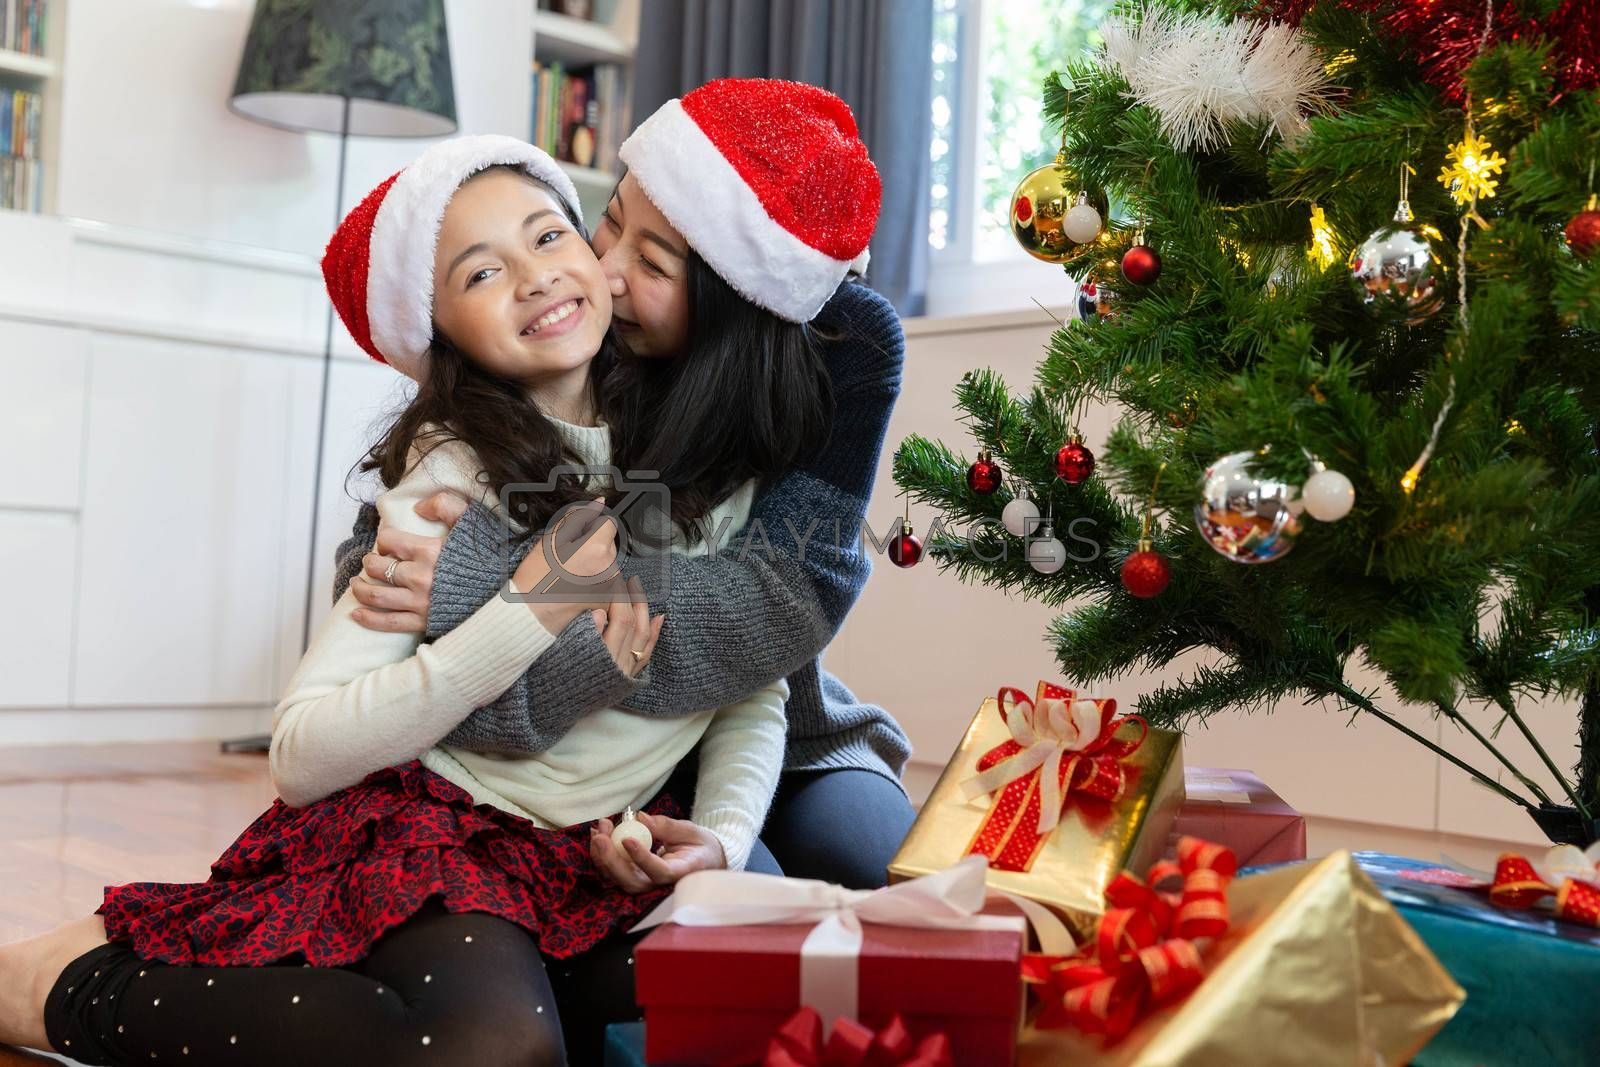 Mom kiss her daughter while decorate the christmas tree during the christmas holiday